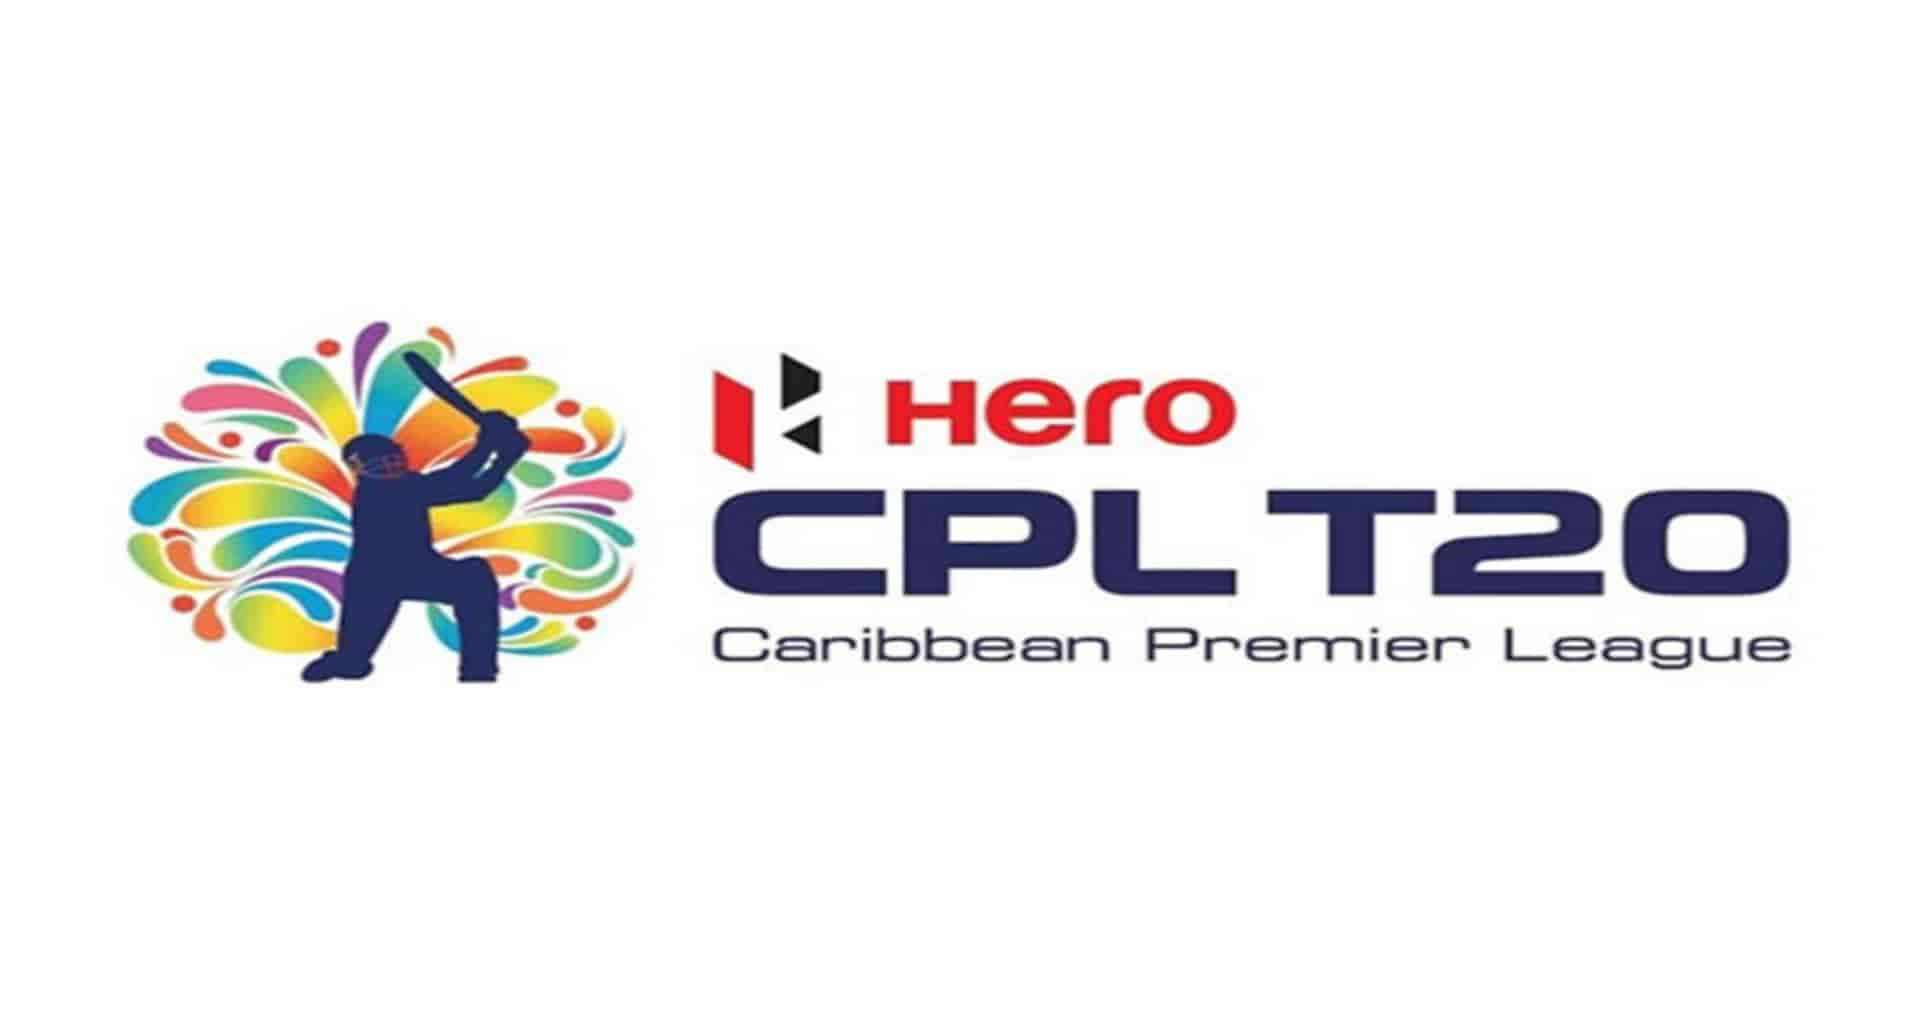 CPL 2020: Check Full Schedule, Live Streaming and Team squads